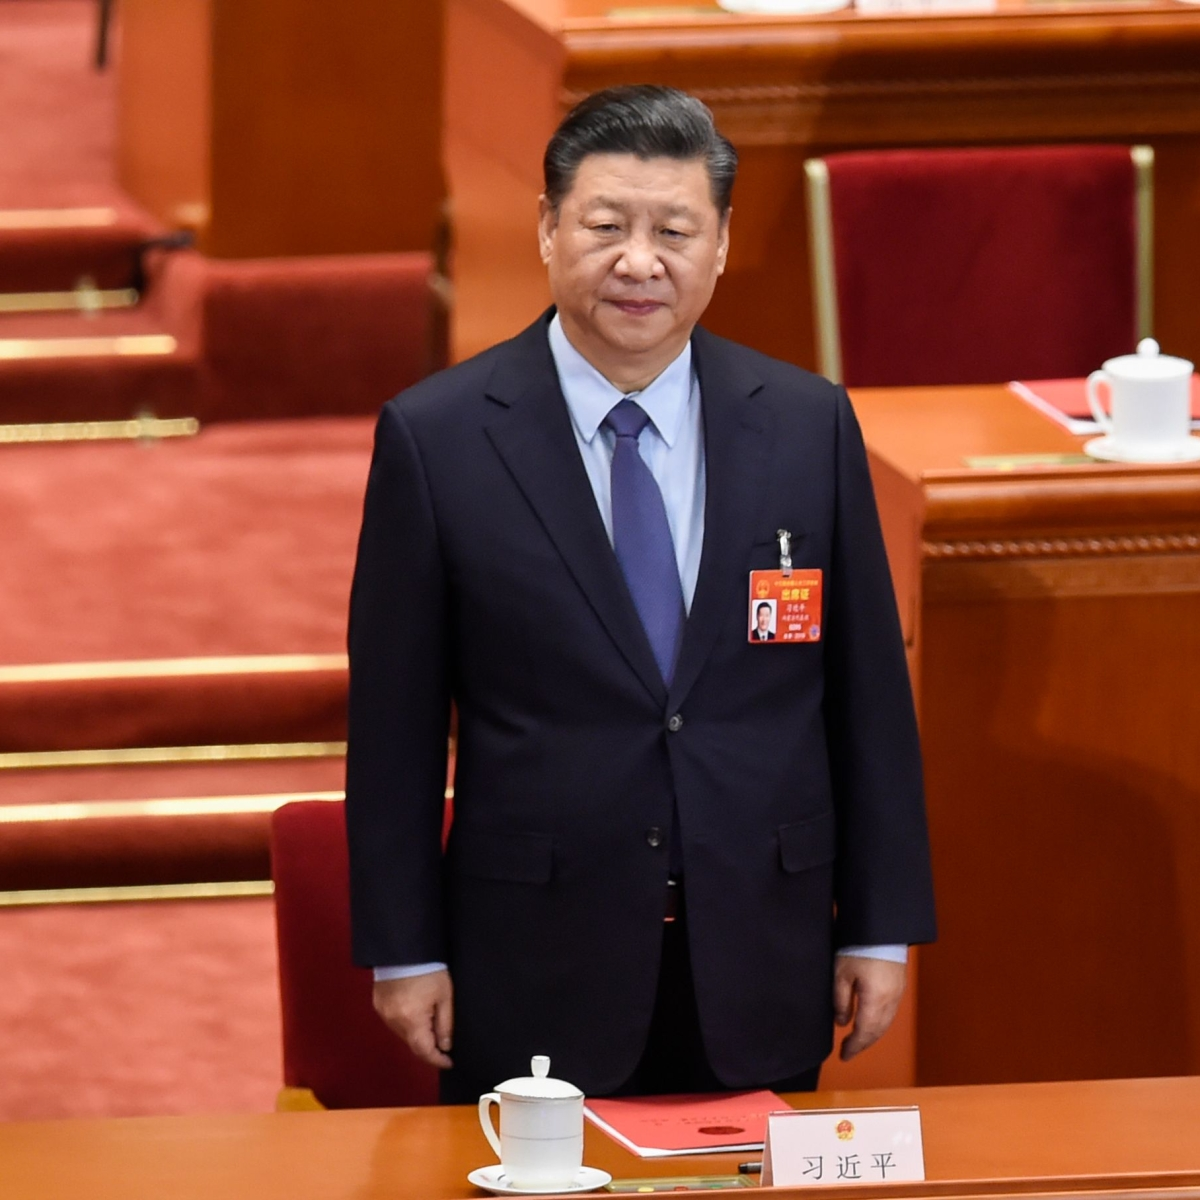 How the Chinese perfected the art of propaganda through deception and subterfuge